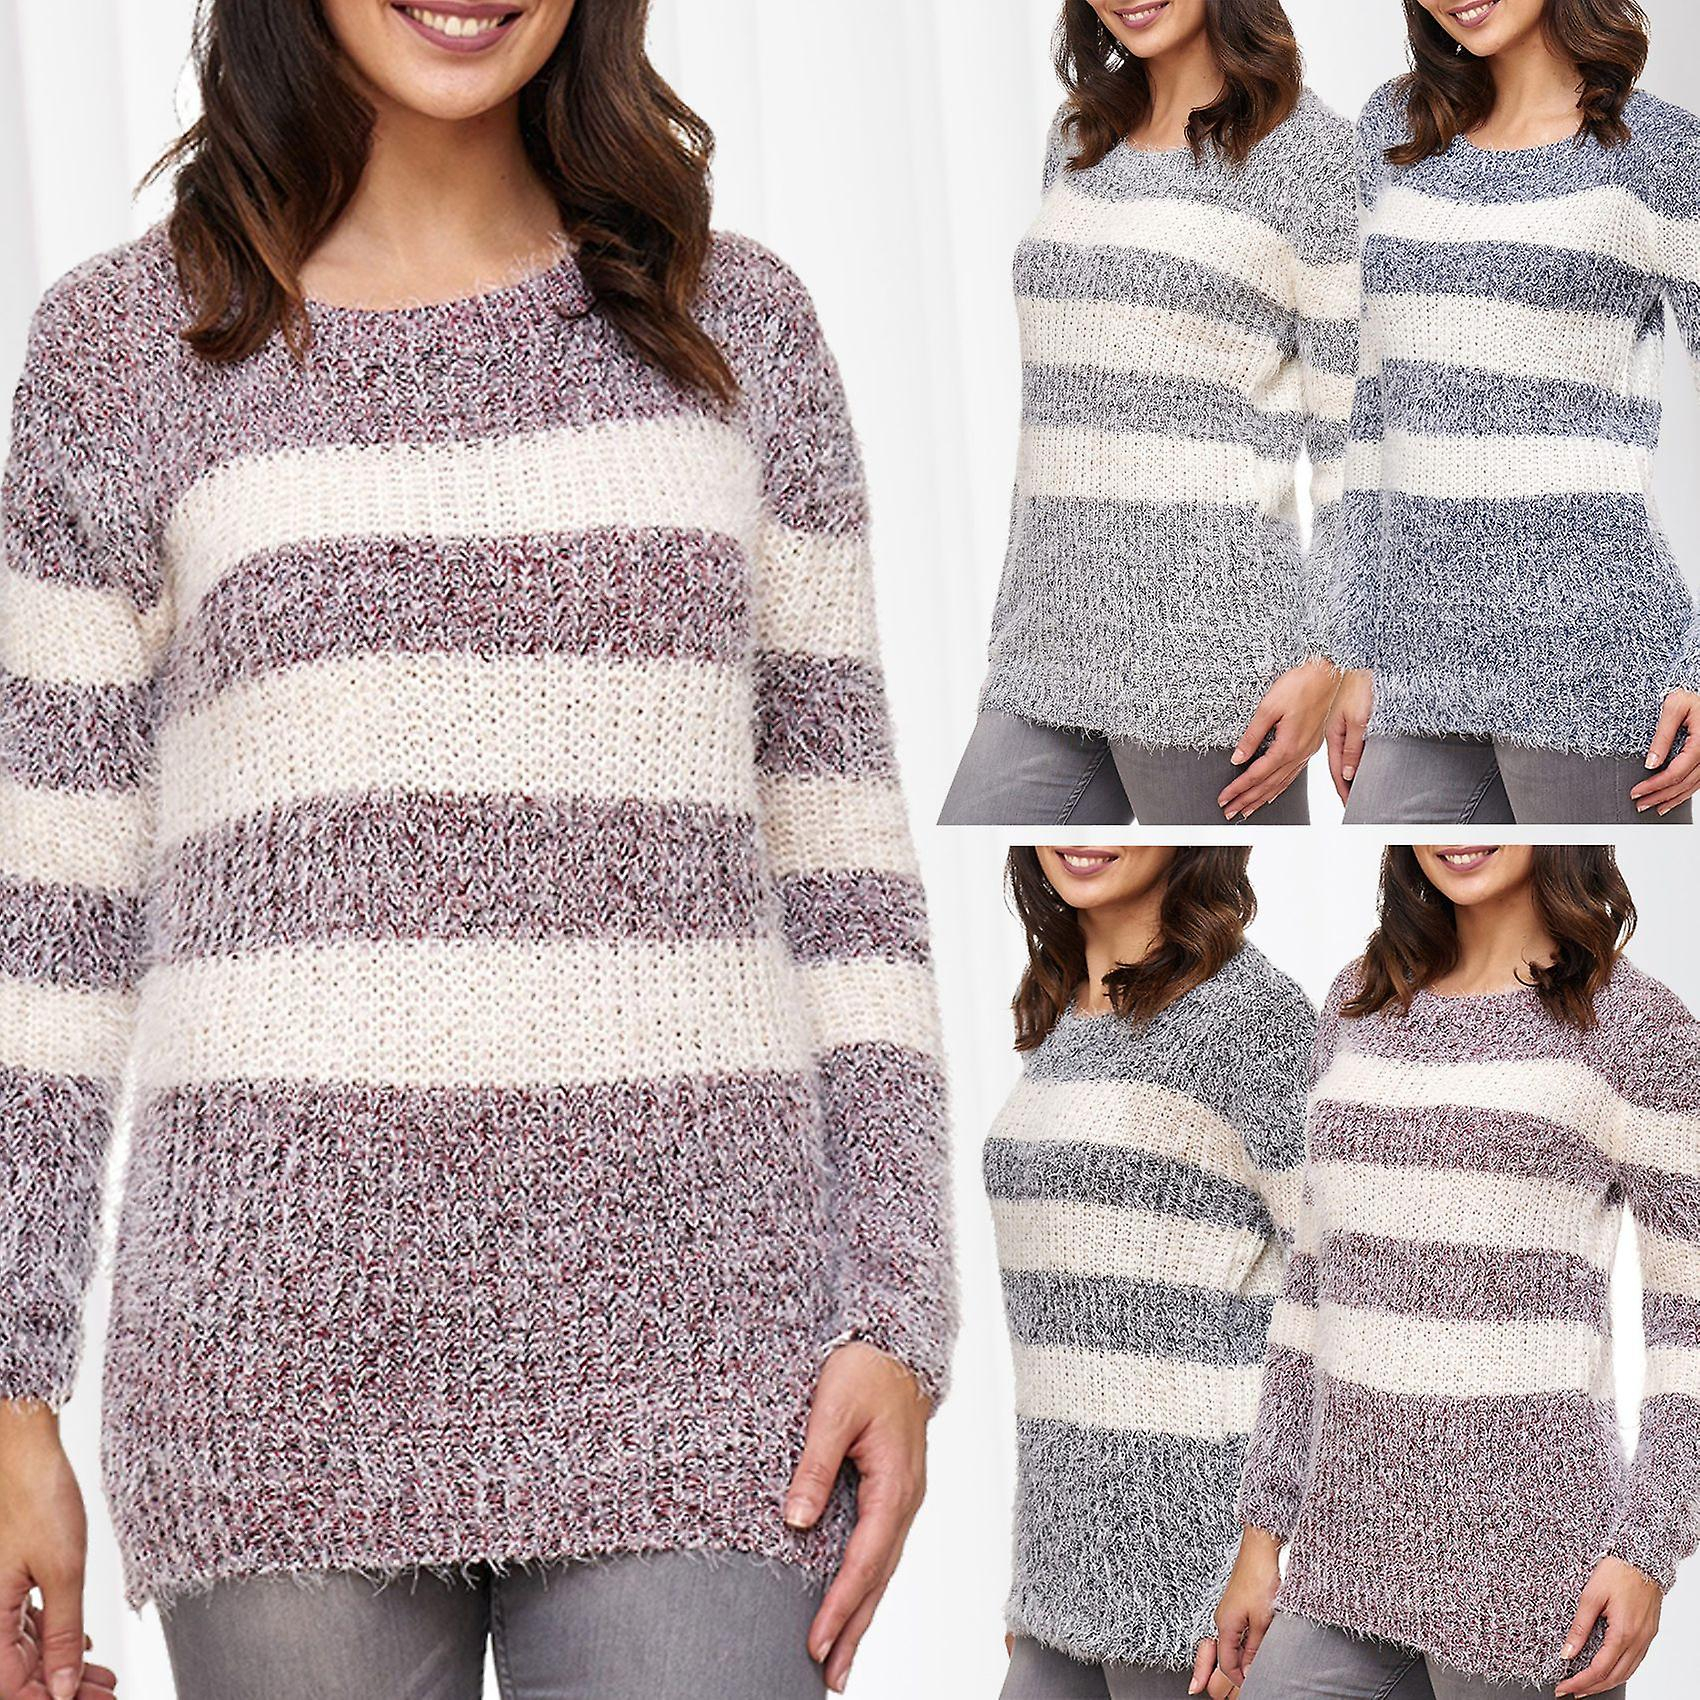 Knitted Pullover Sweater Patterns Womens Knit Pullover Sweat Shirt Sweater Longsleeve Cozy Winter Stripes Pattern